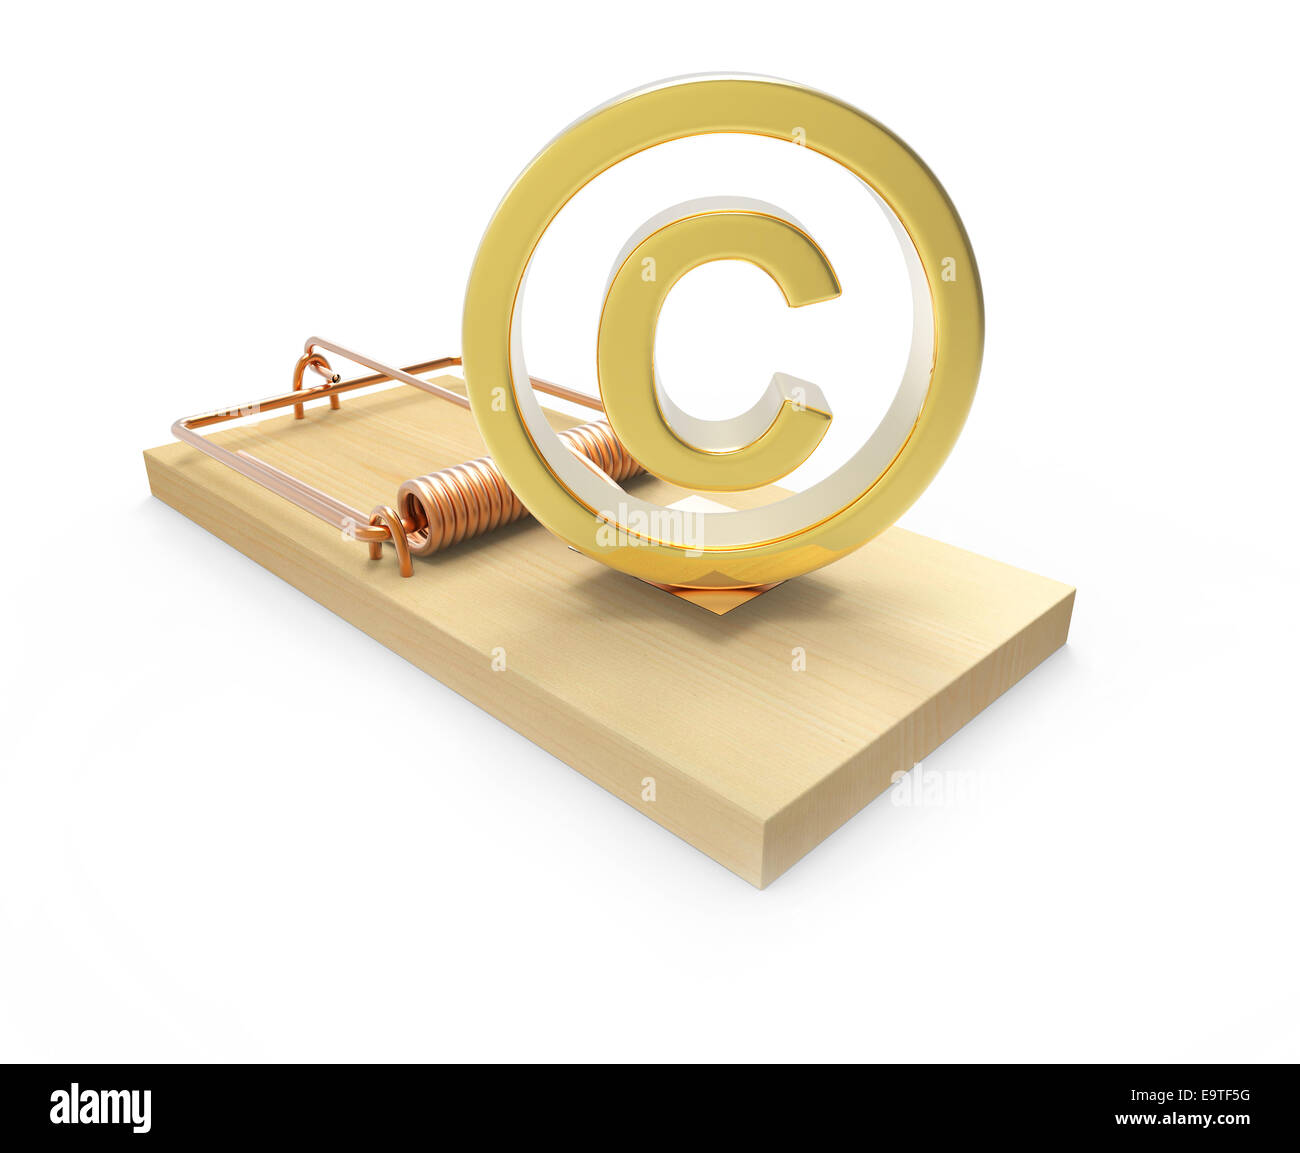 3d Render Of A Copyright Symbol In A Mousetrap Stock Photo 74912140